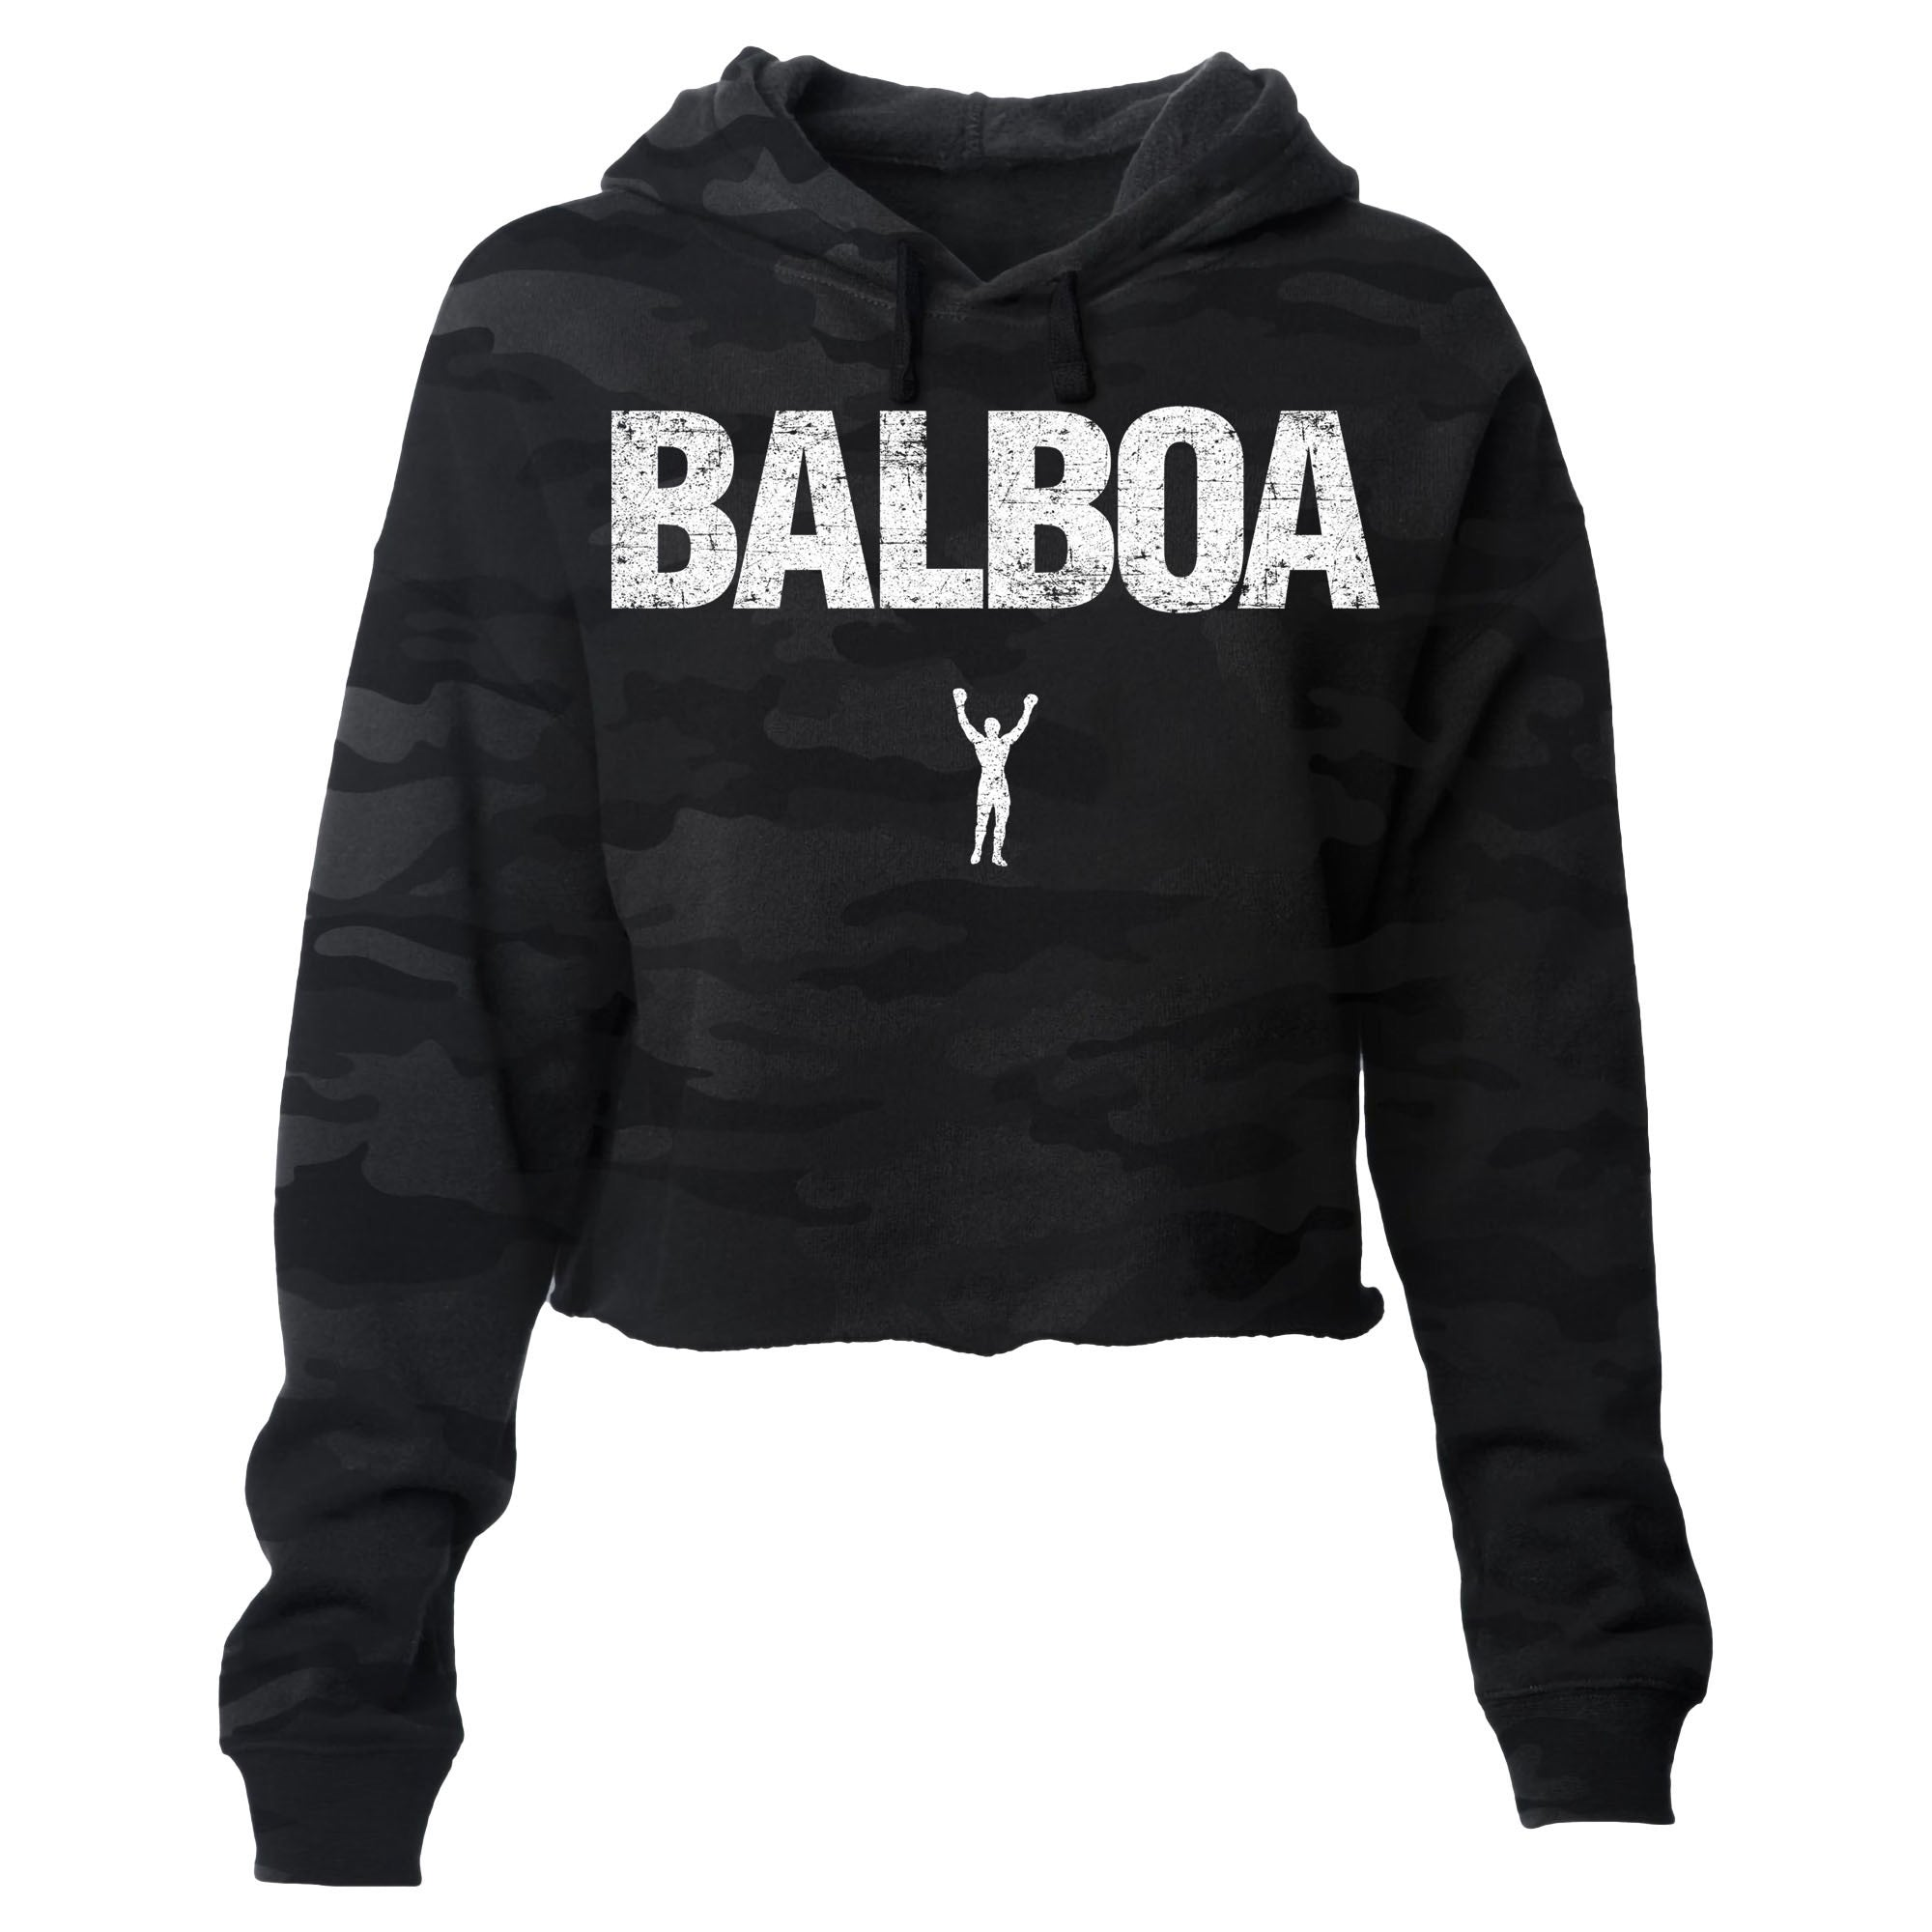 BALBOA Camo Cropped Pullover Hoodie